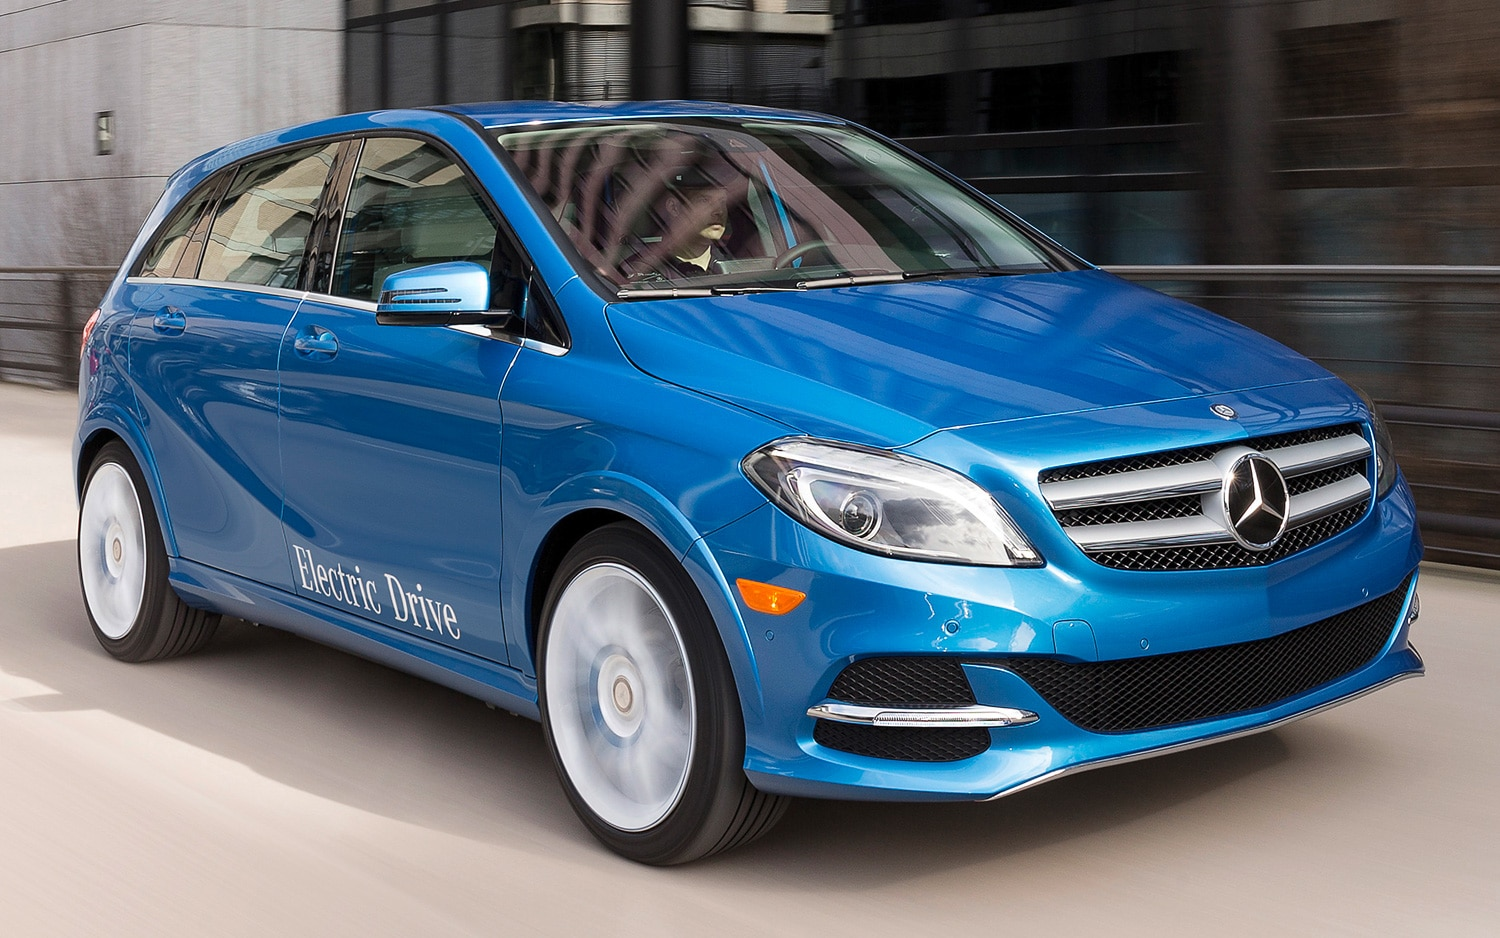 2014 Mercedes Benz B Class Electric Drive Front Three Quarters View1